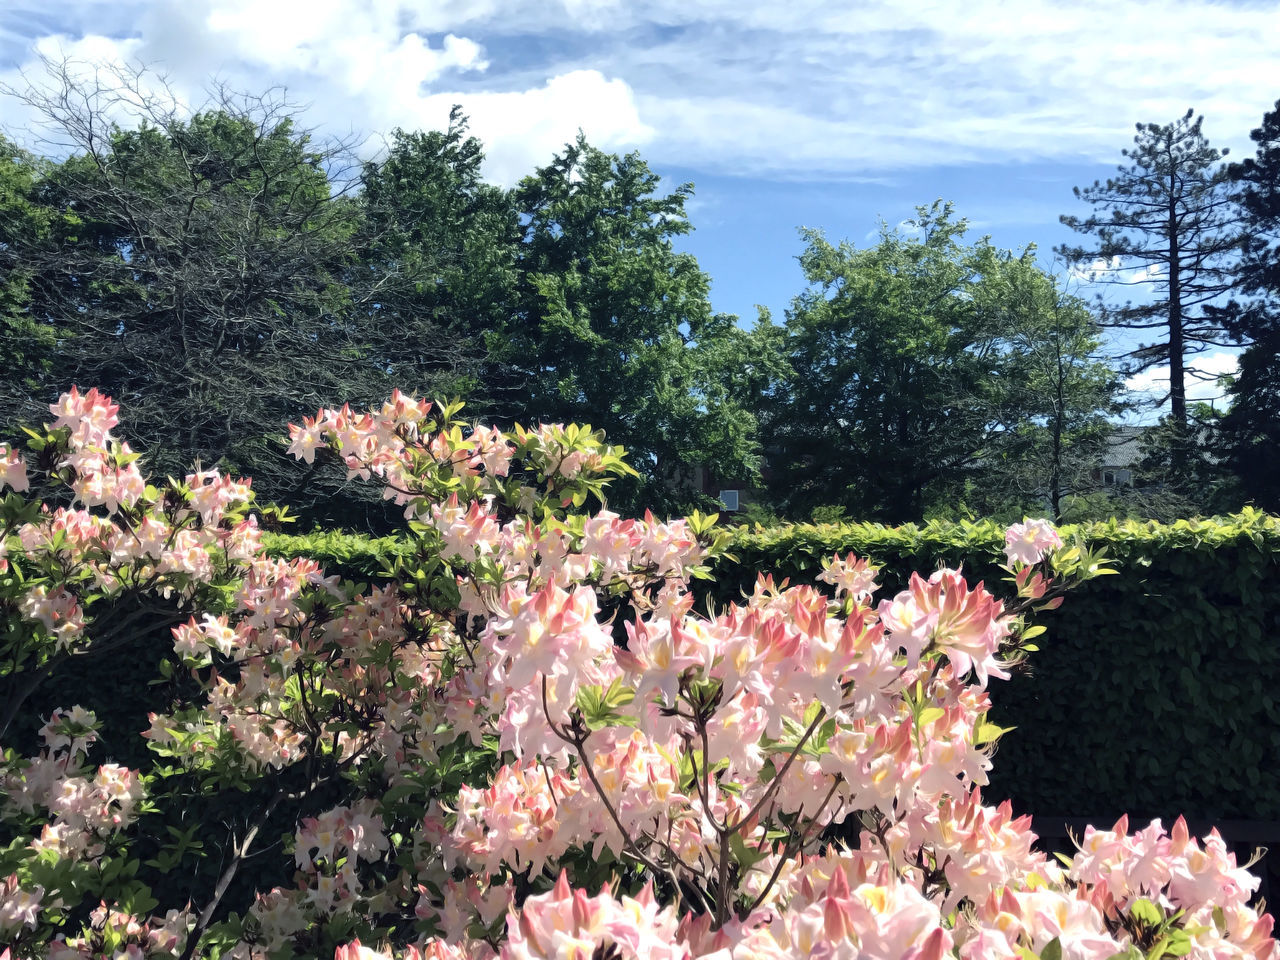 Rhododendron in the city park under spring Beauty Beauty In Nature Beauty In Nature Blue City Colorful Day Flower Flowers Fragility Grass Green Growth Nature Nature No People Outdoors Park Plant Plant Rhododendron Skies Sky Tree Trees